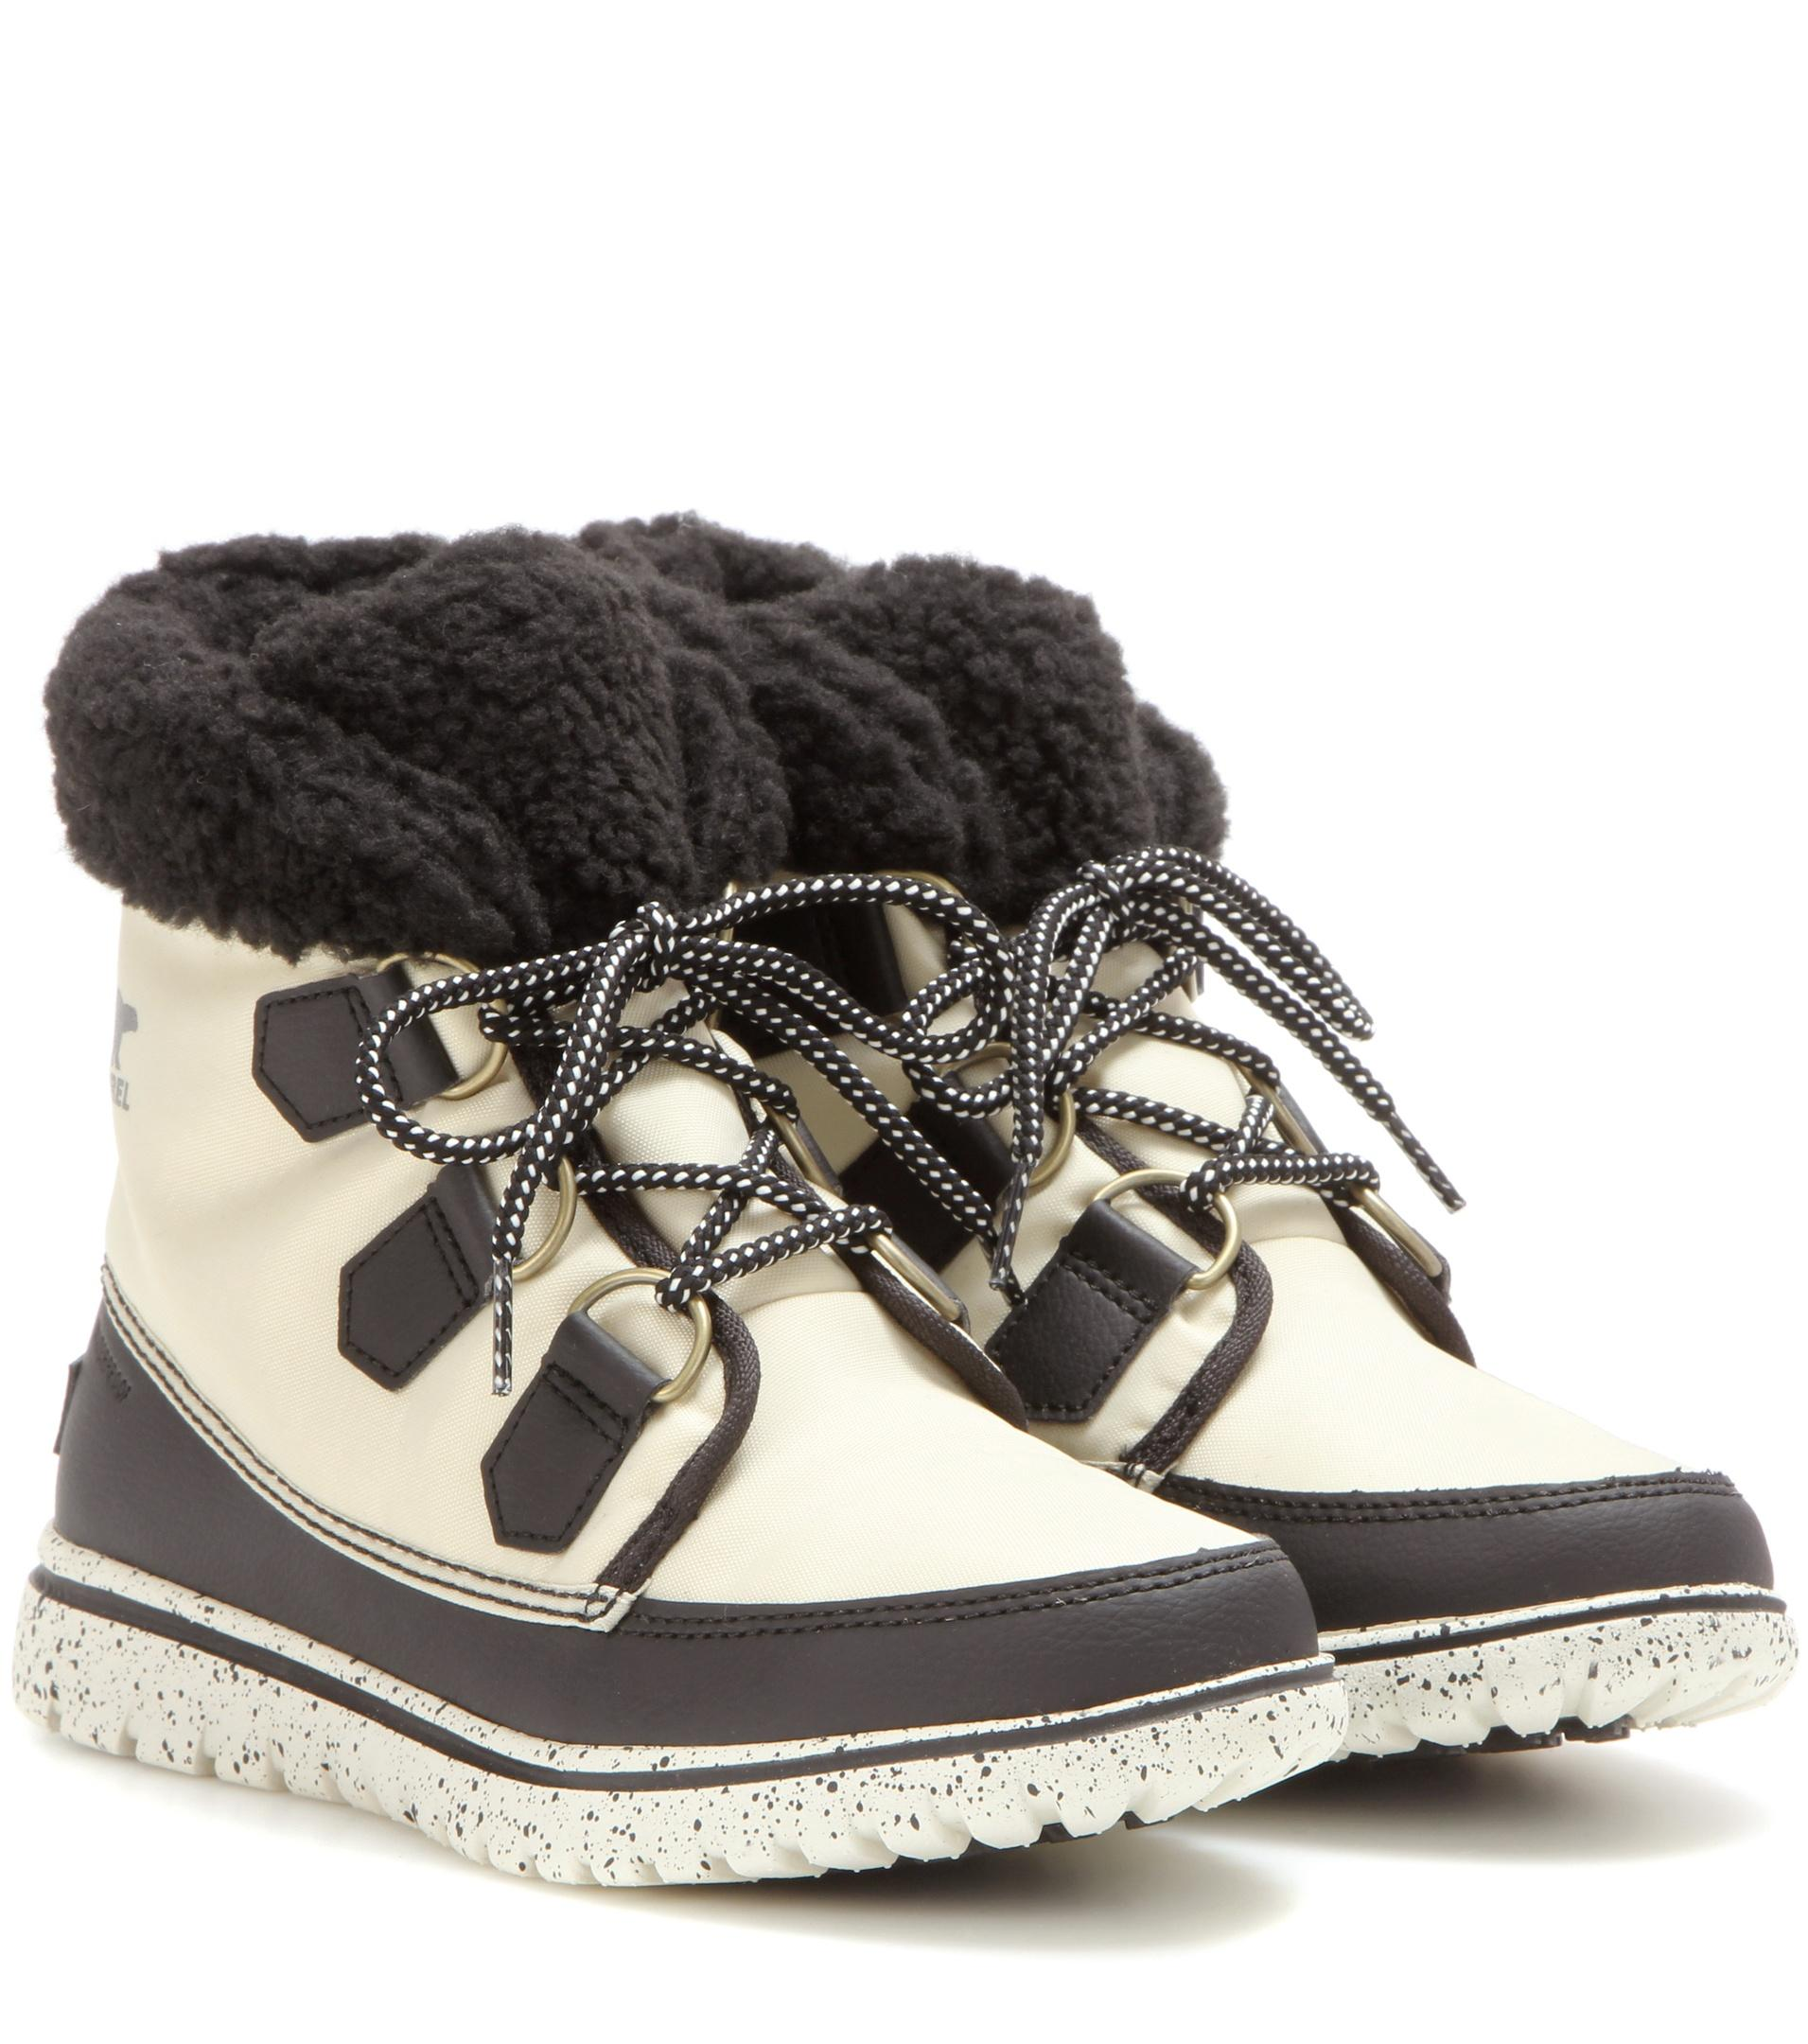 a52023b84ad Sorel White Cozy™ Carnival Fleece-Lined Ankle Boots